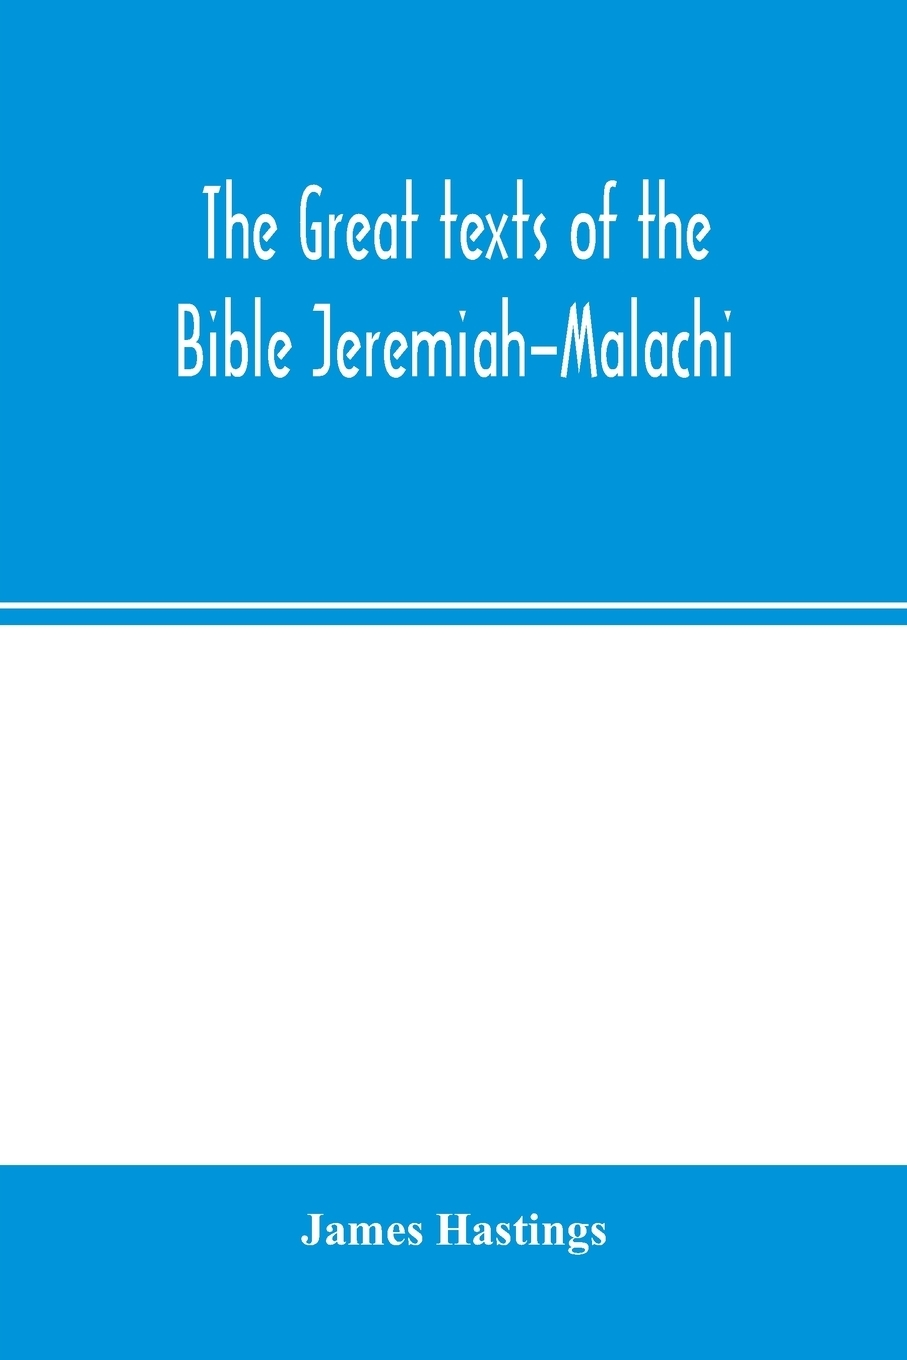 James Hastings. The great texts of the Bible Jeremiah-Malachi